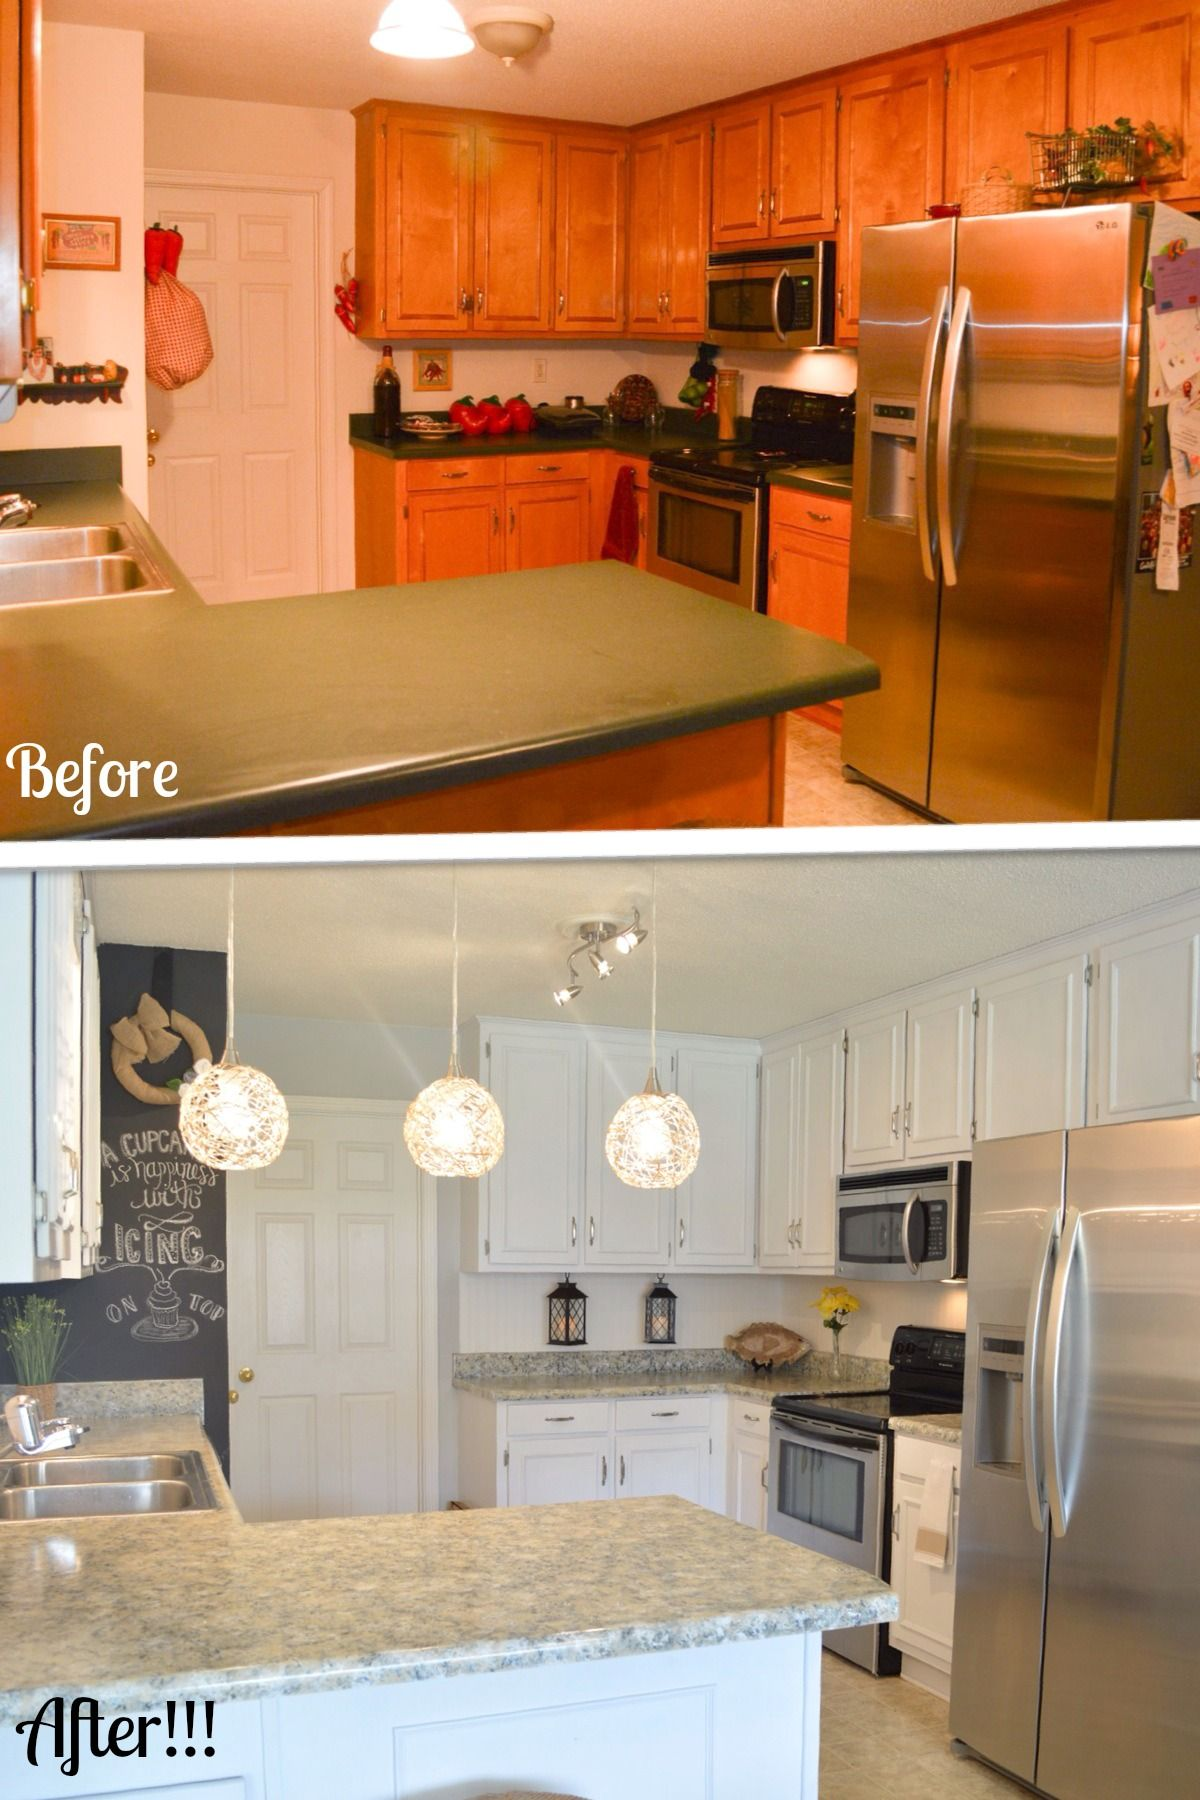 Kitchen Makeover On A Budget. Remodel Your Cabinets And Countertops With  Paint For Under $200